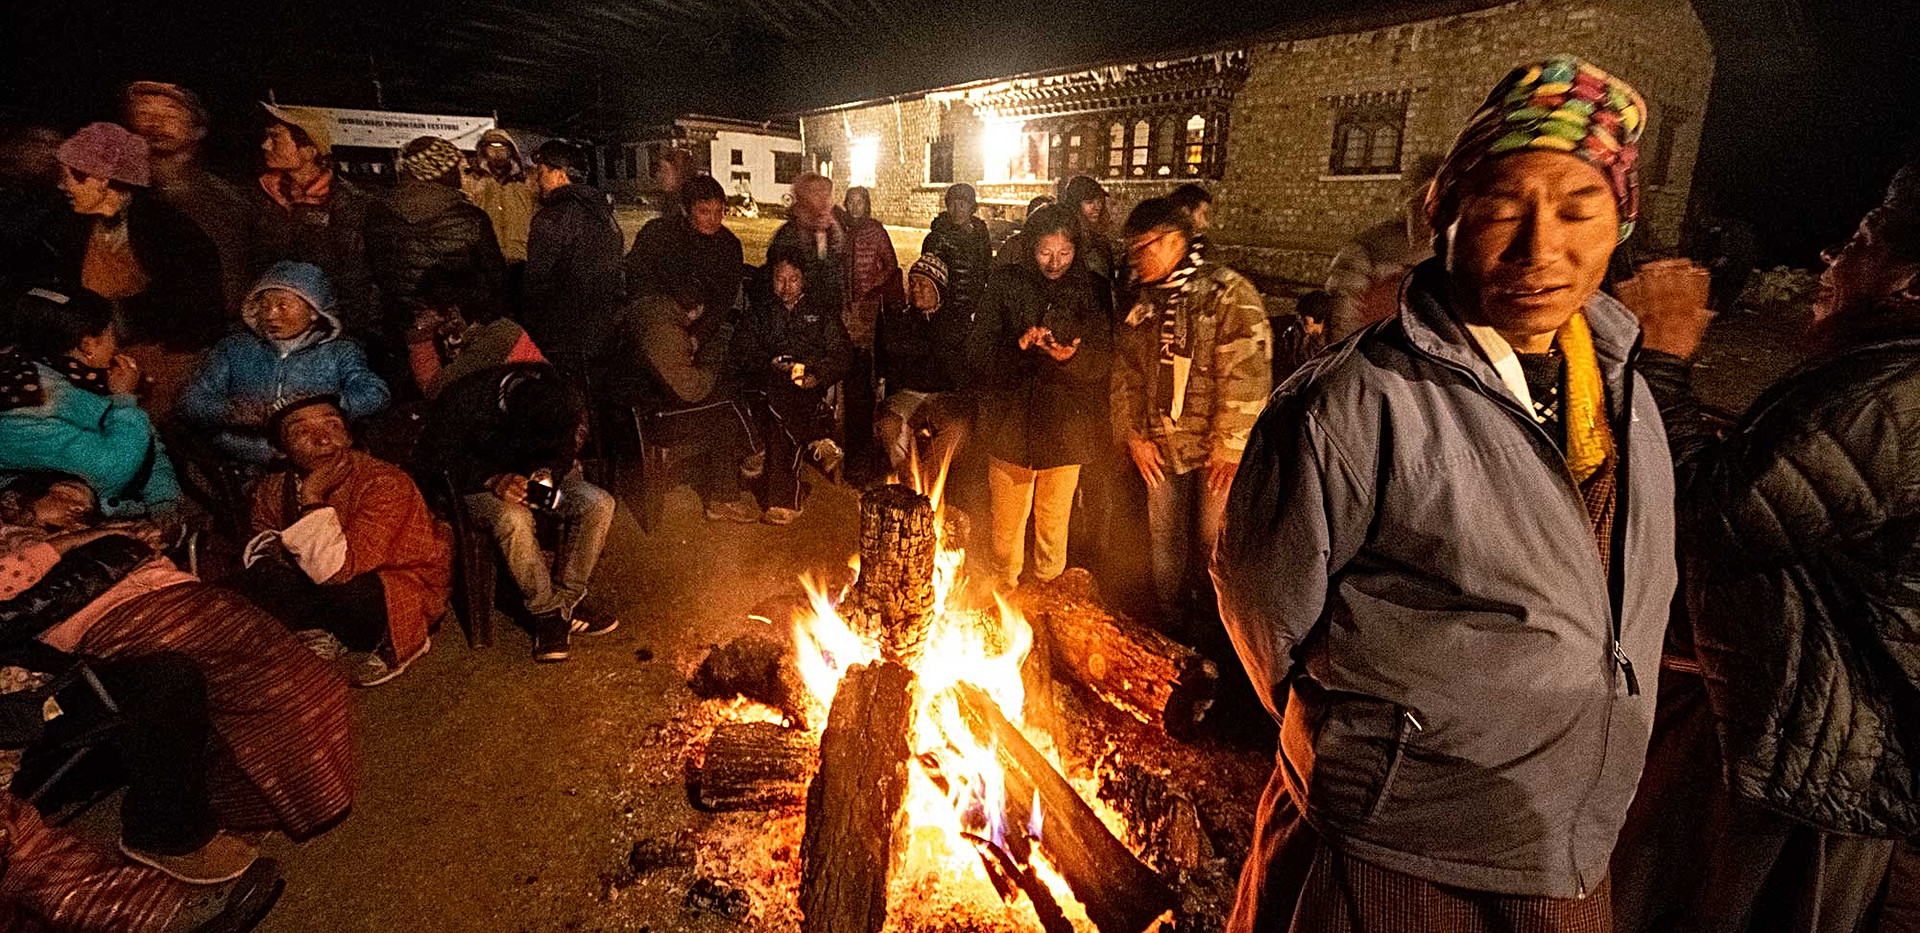 festivities-and-communal-fire-jomolhari.